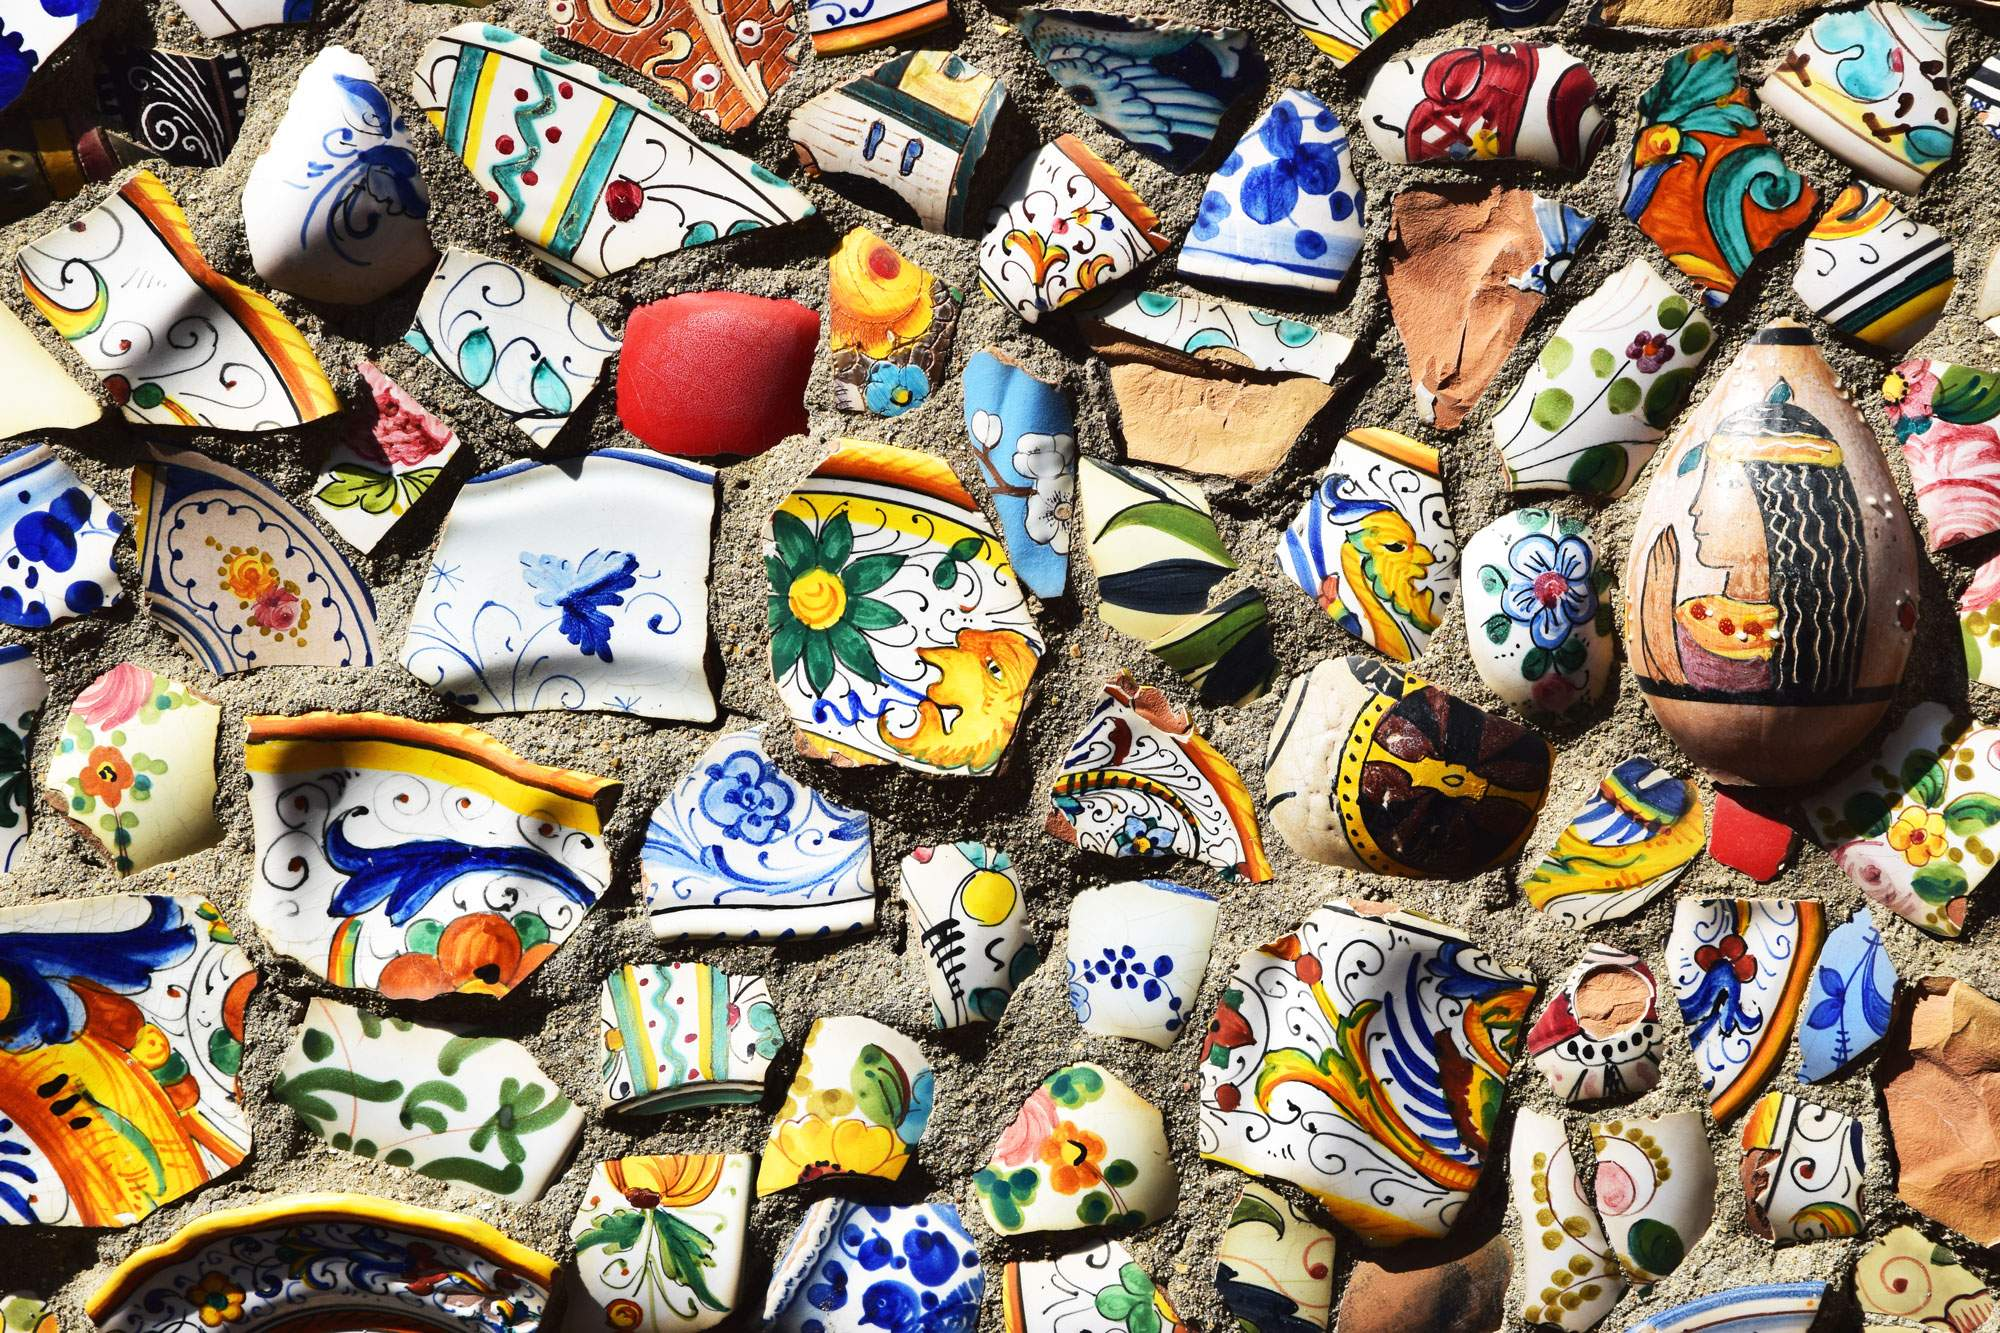 Amalfi Ceramics: Unearthing the Marvelous Maiolica